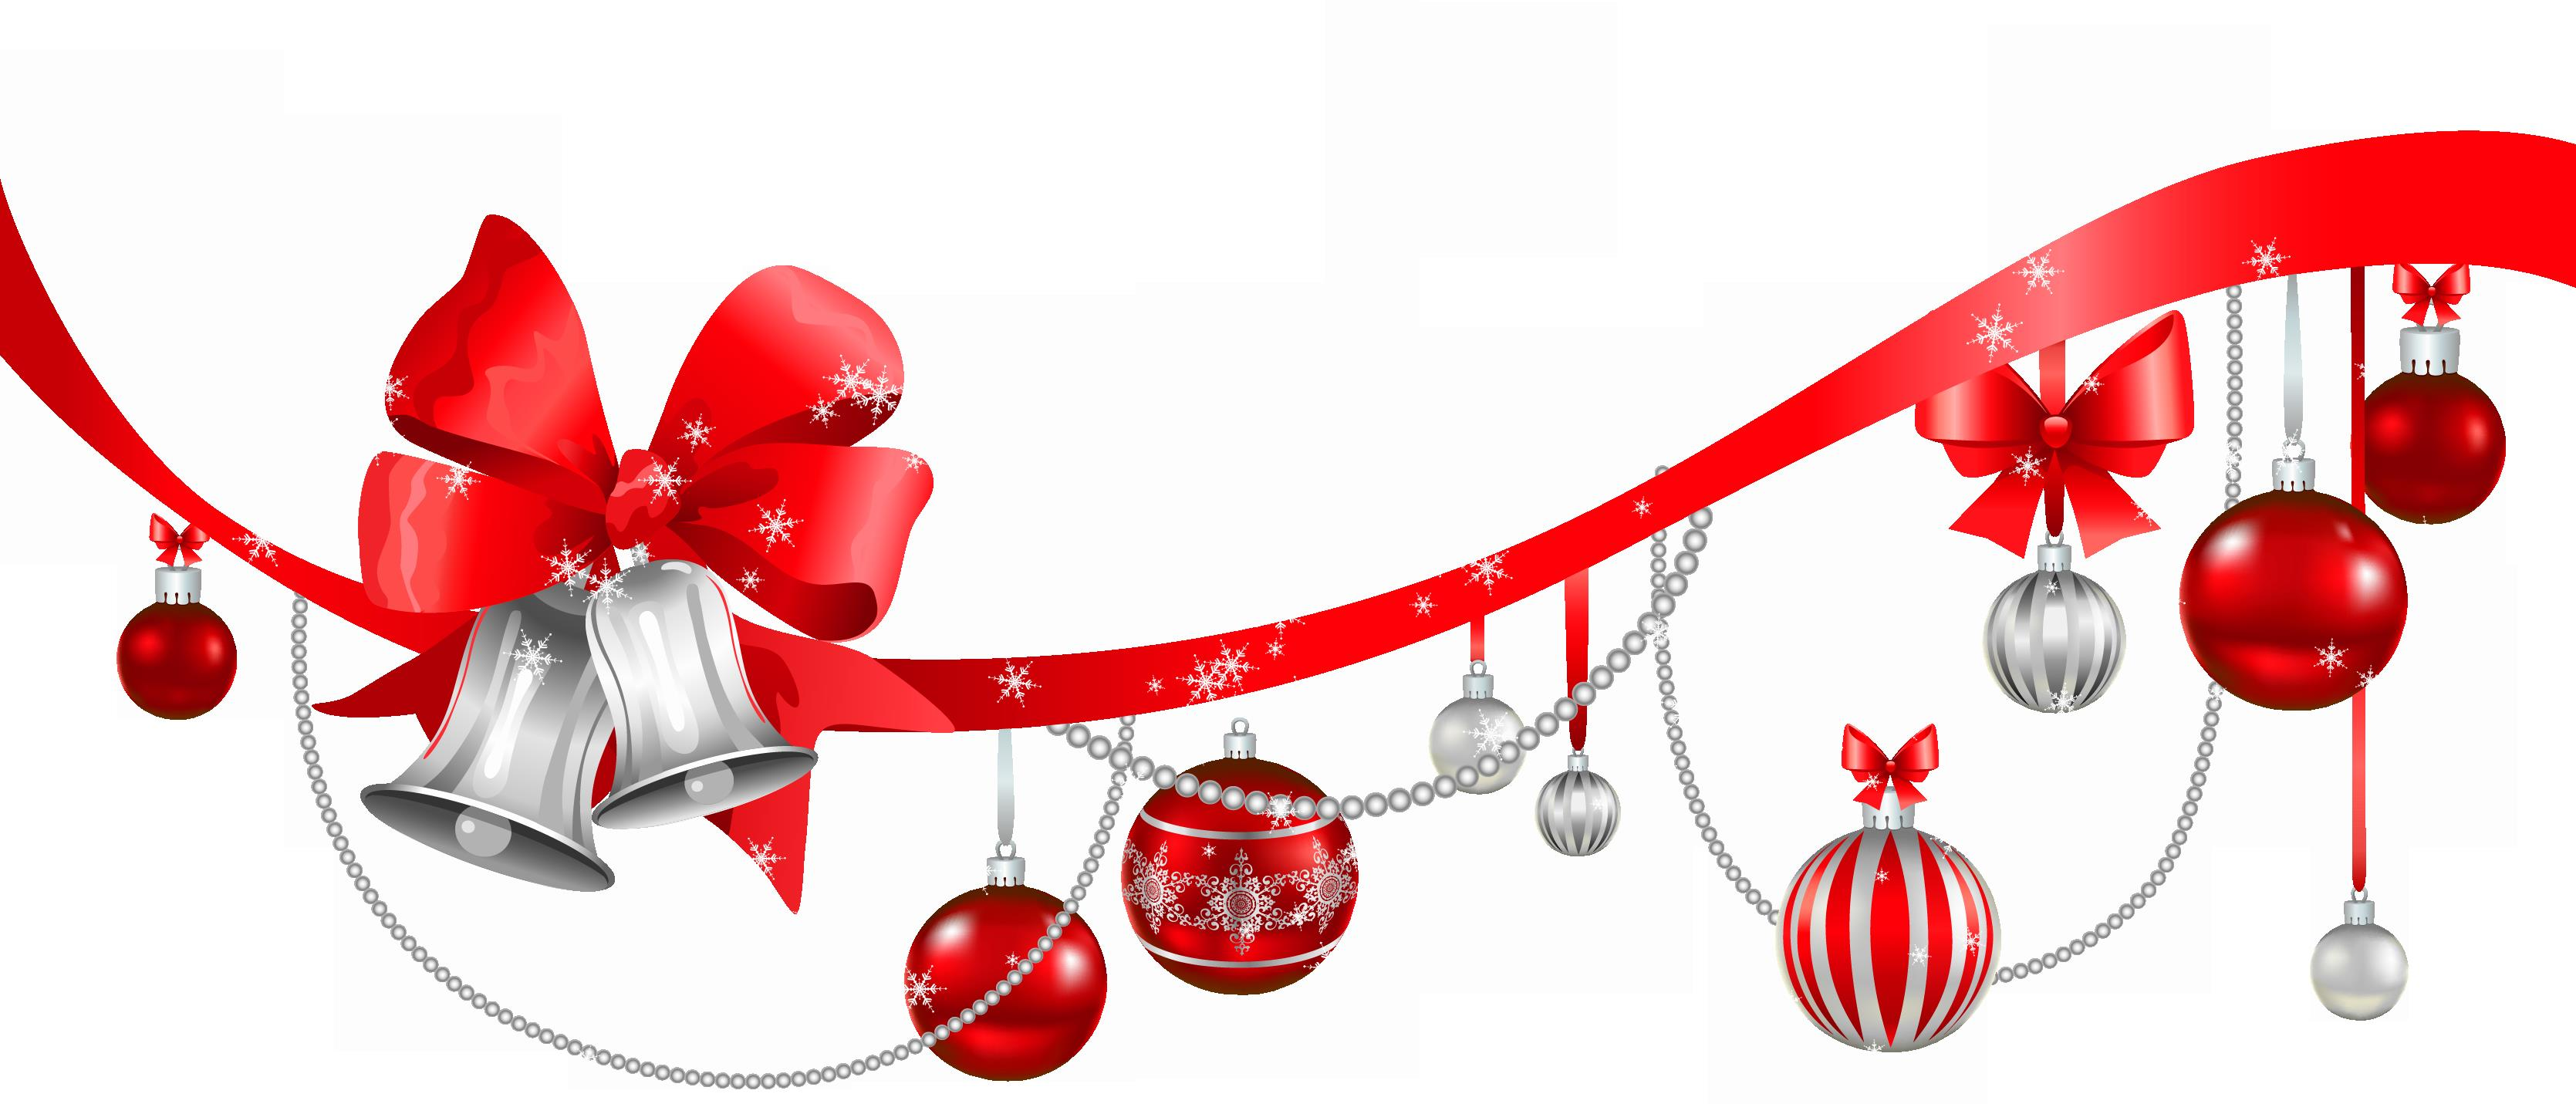 3339x1431 Pictures Of Christmas Decorations Clipart